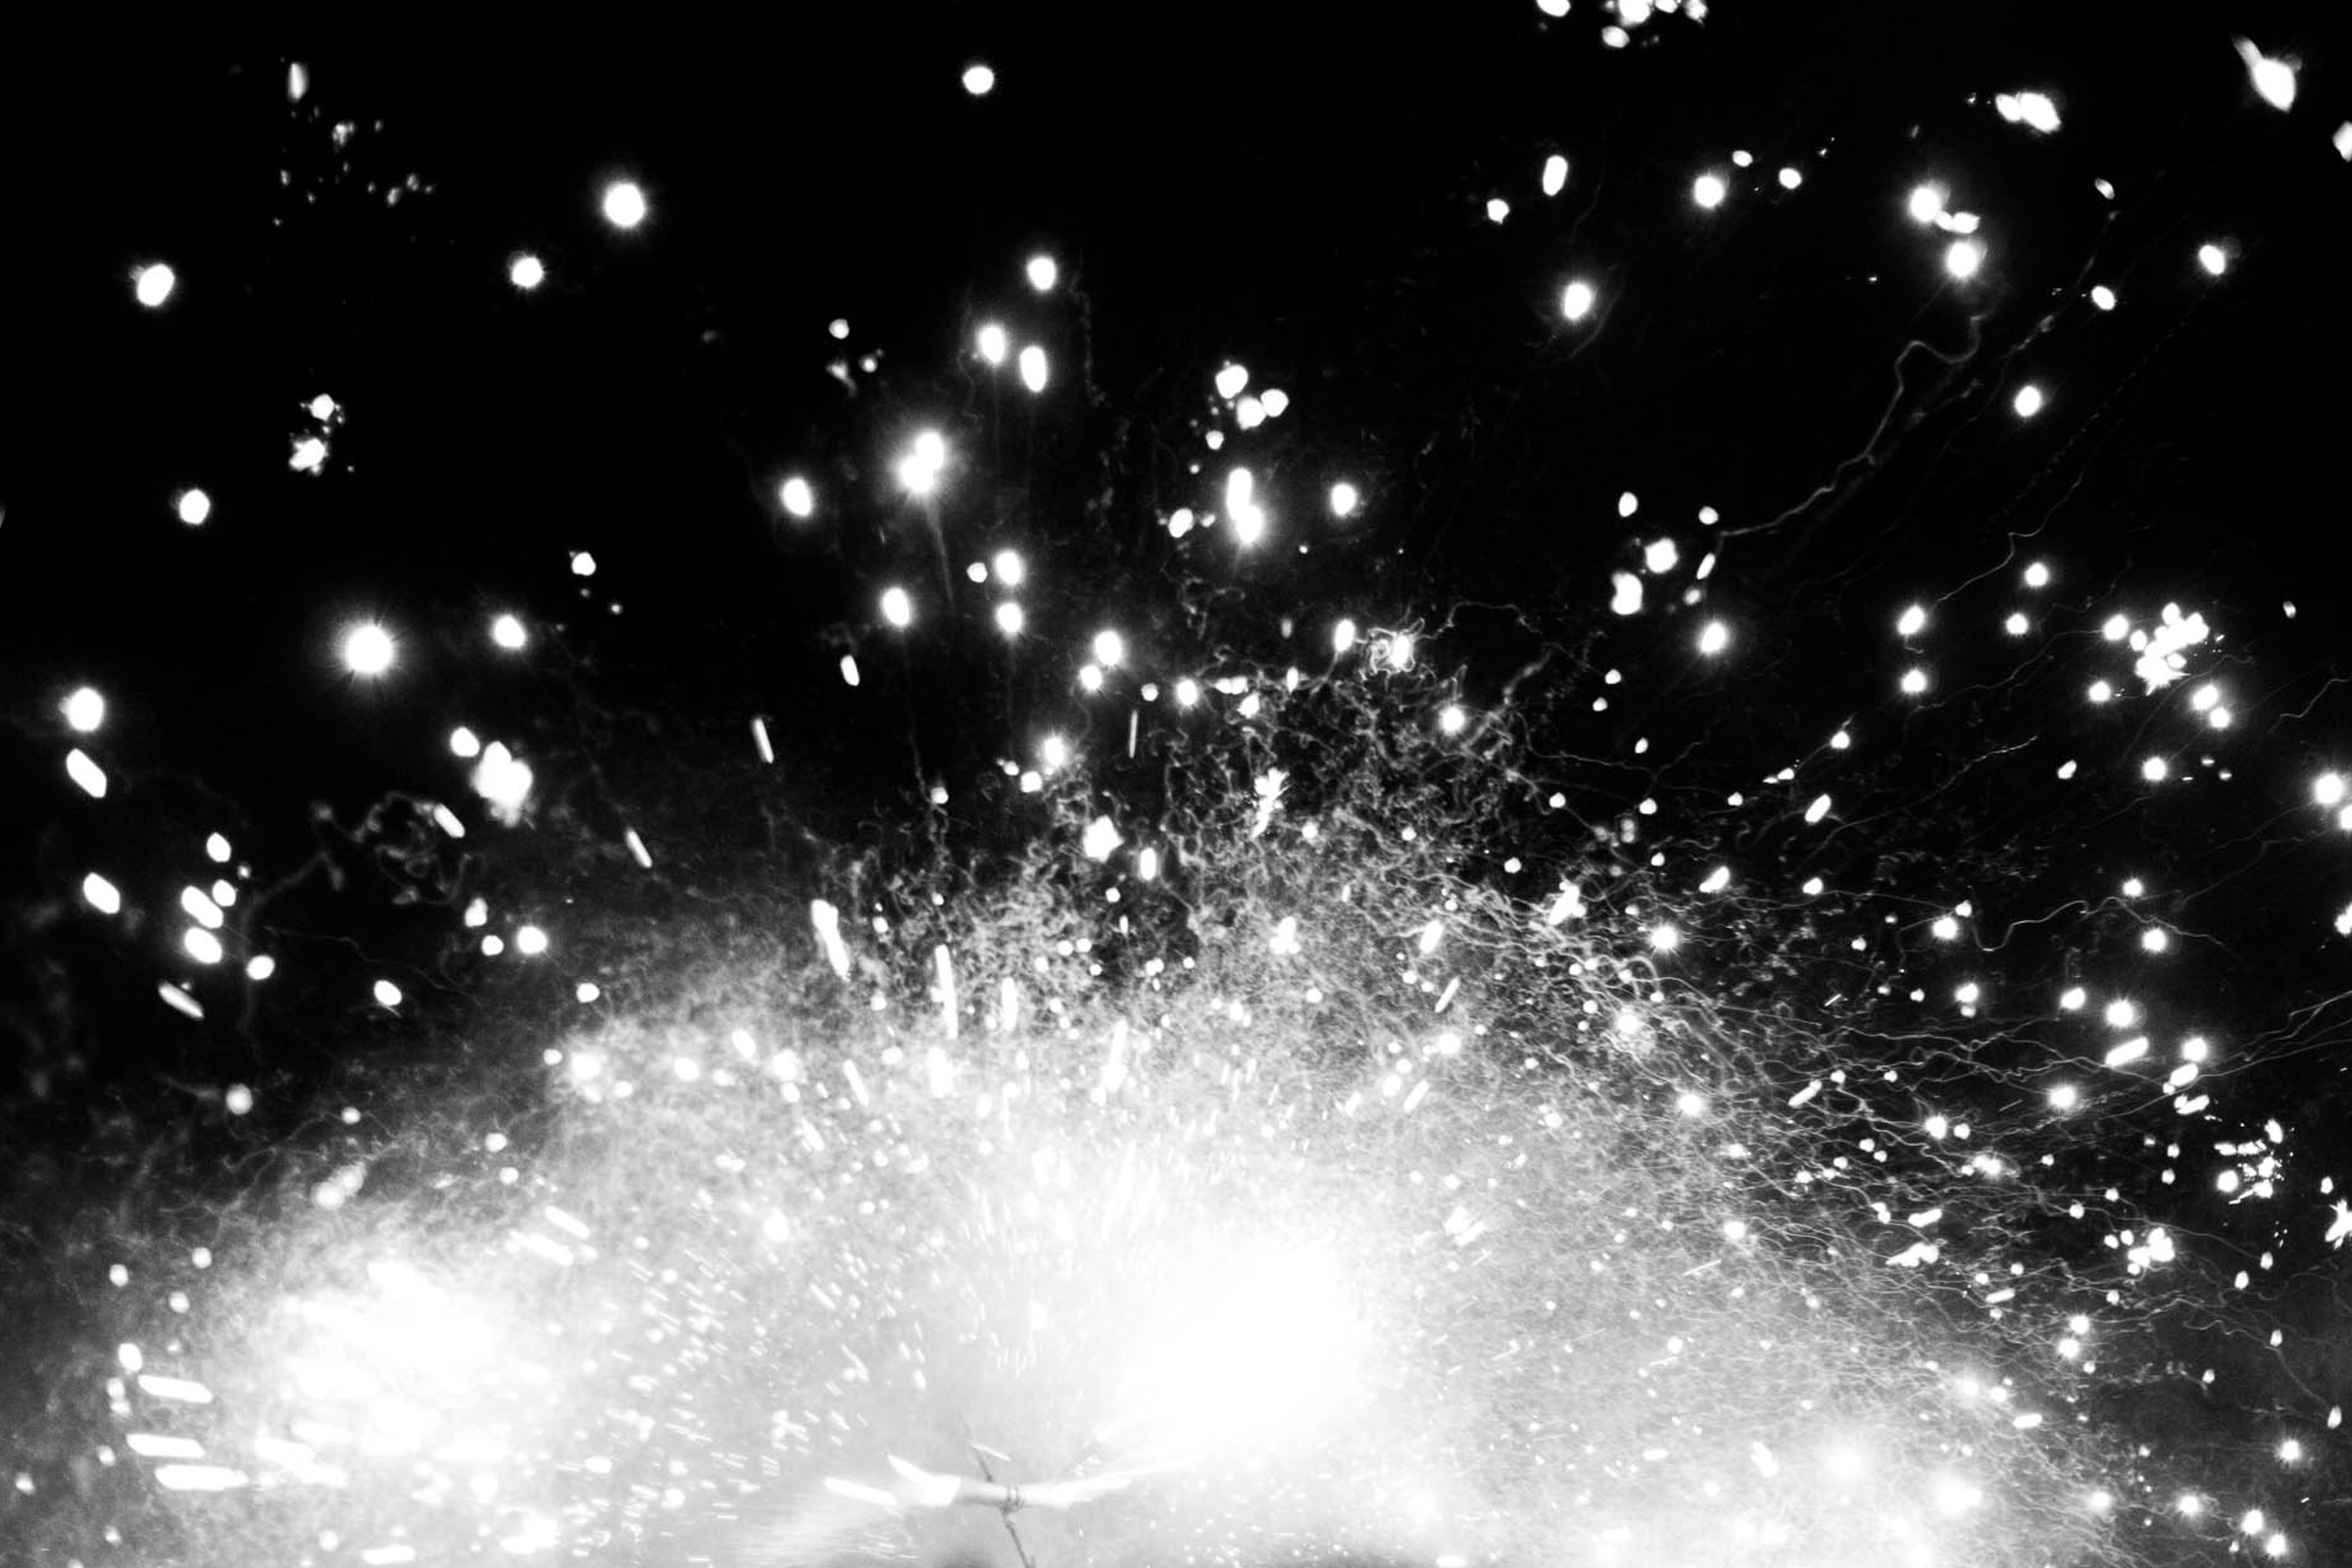 Chacon+Images_Correfocs_Web-4.jpg